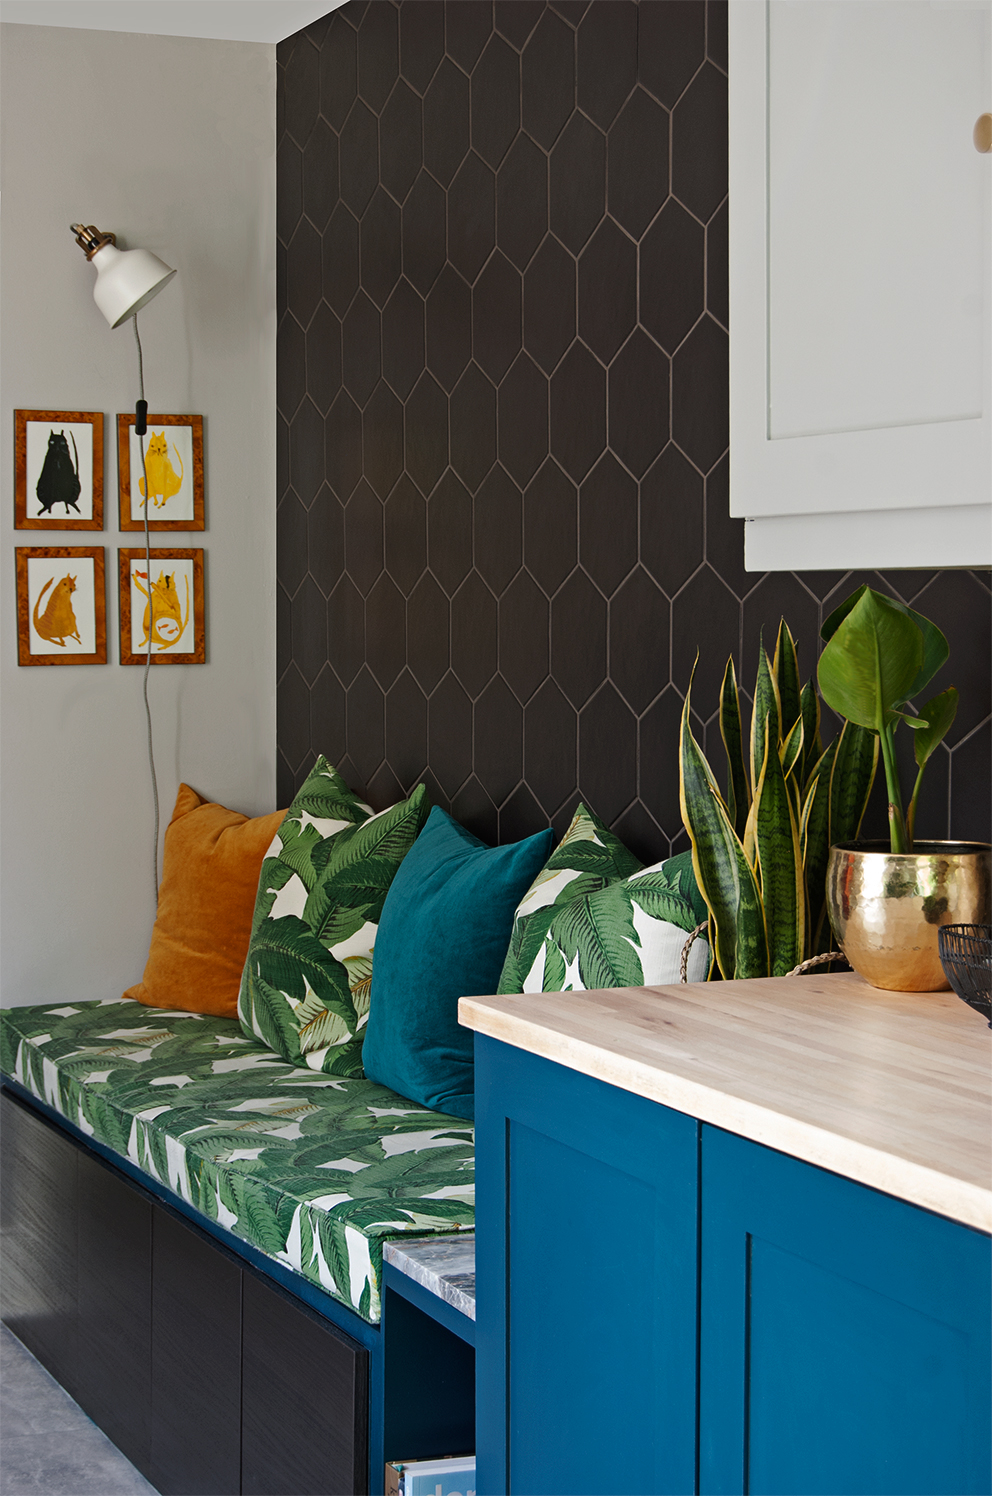 Bringing The Outdoors In - French For Pineapple Blog